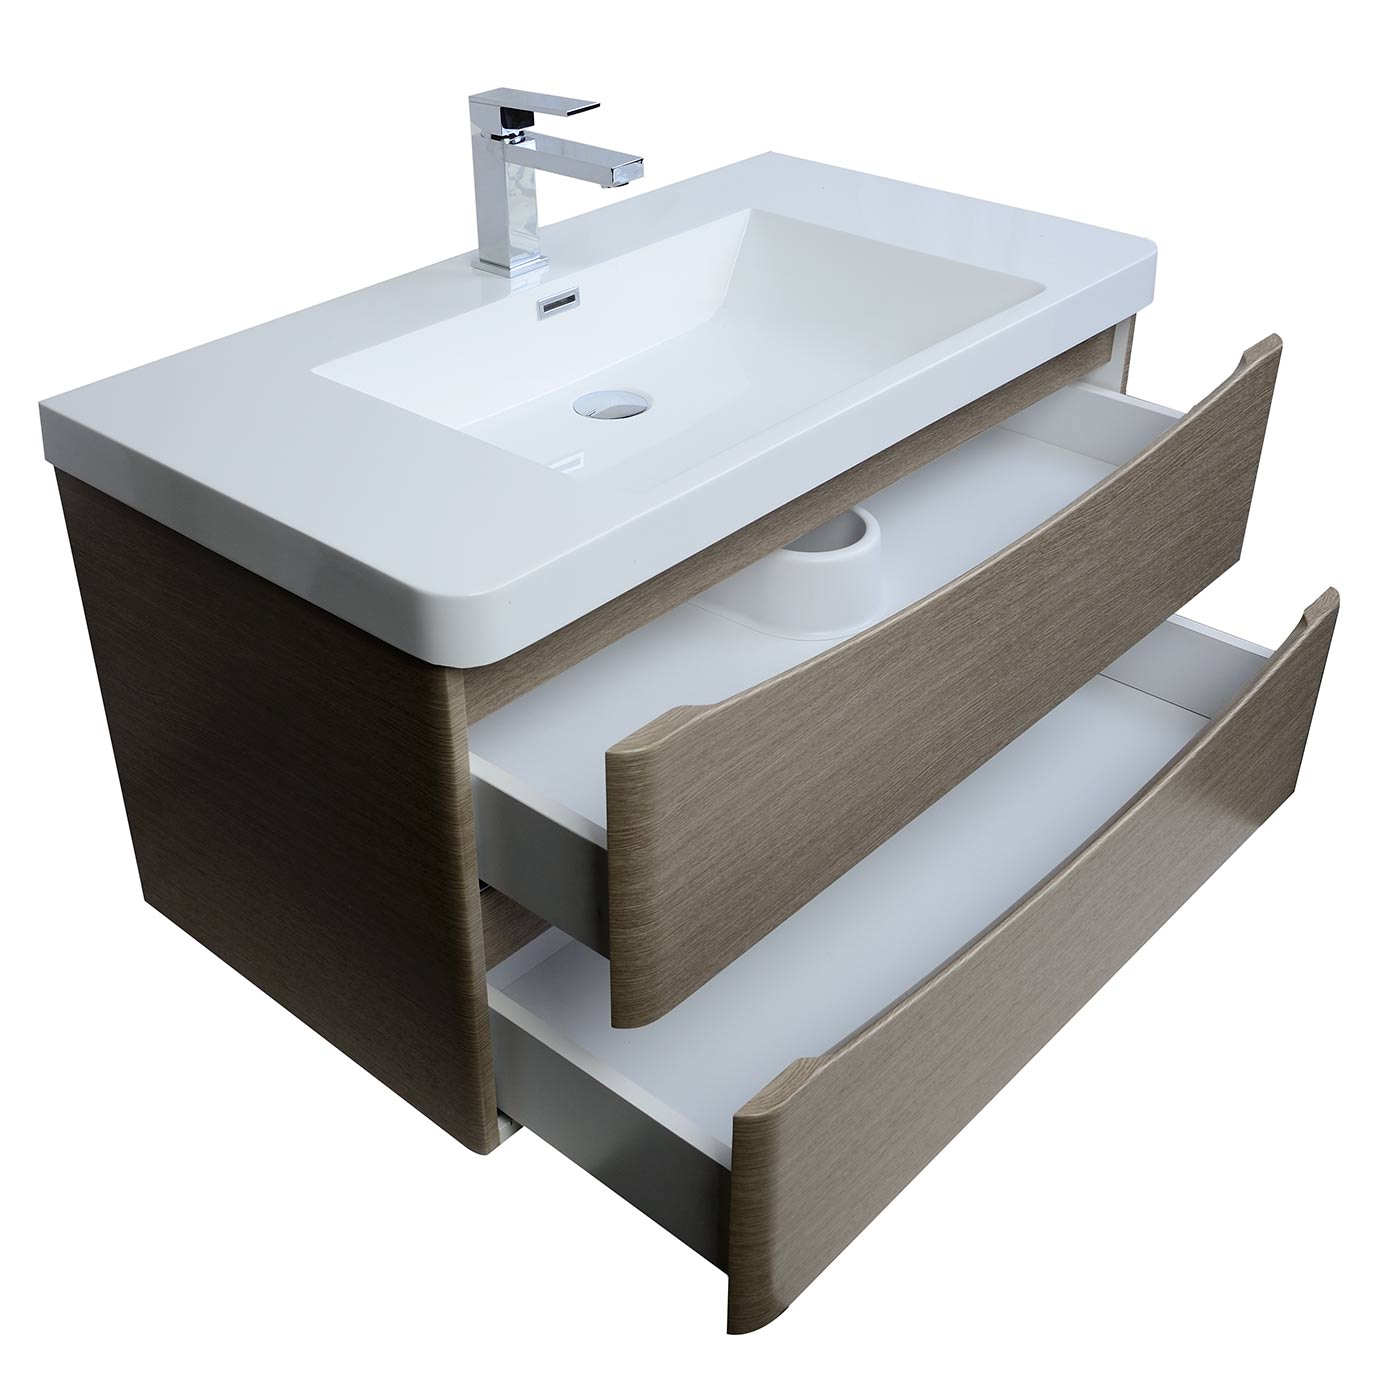 buy merida 30 inch wall mount bathroom vanity in light 13764 | 30277 wall mounted single bathroom vanity tn sm900 lp 2